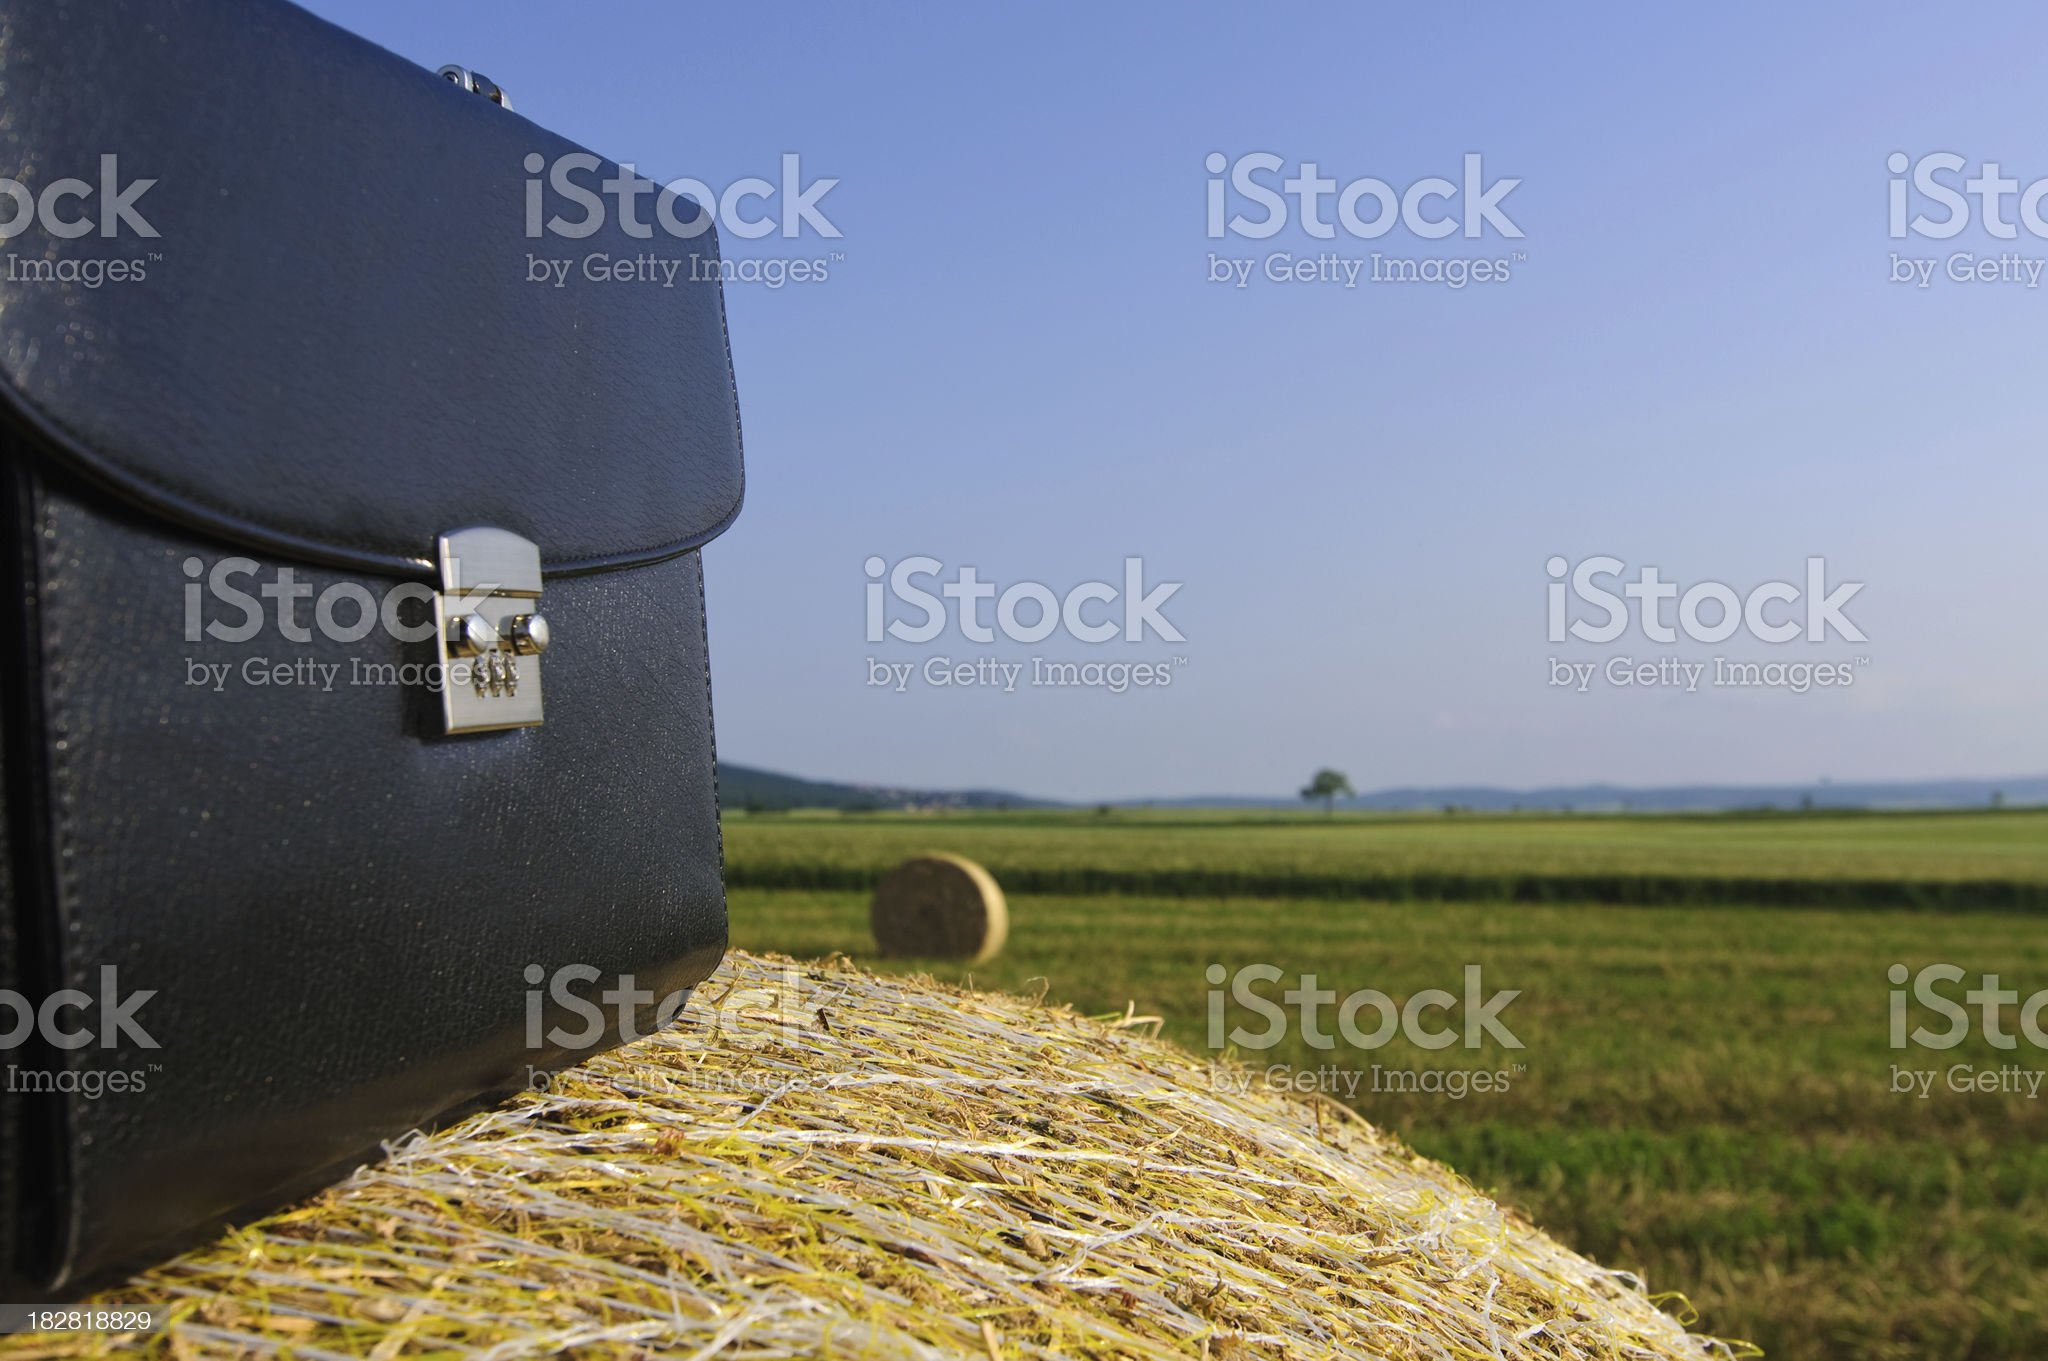 Briefcase on bale royalty-free stock photo